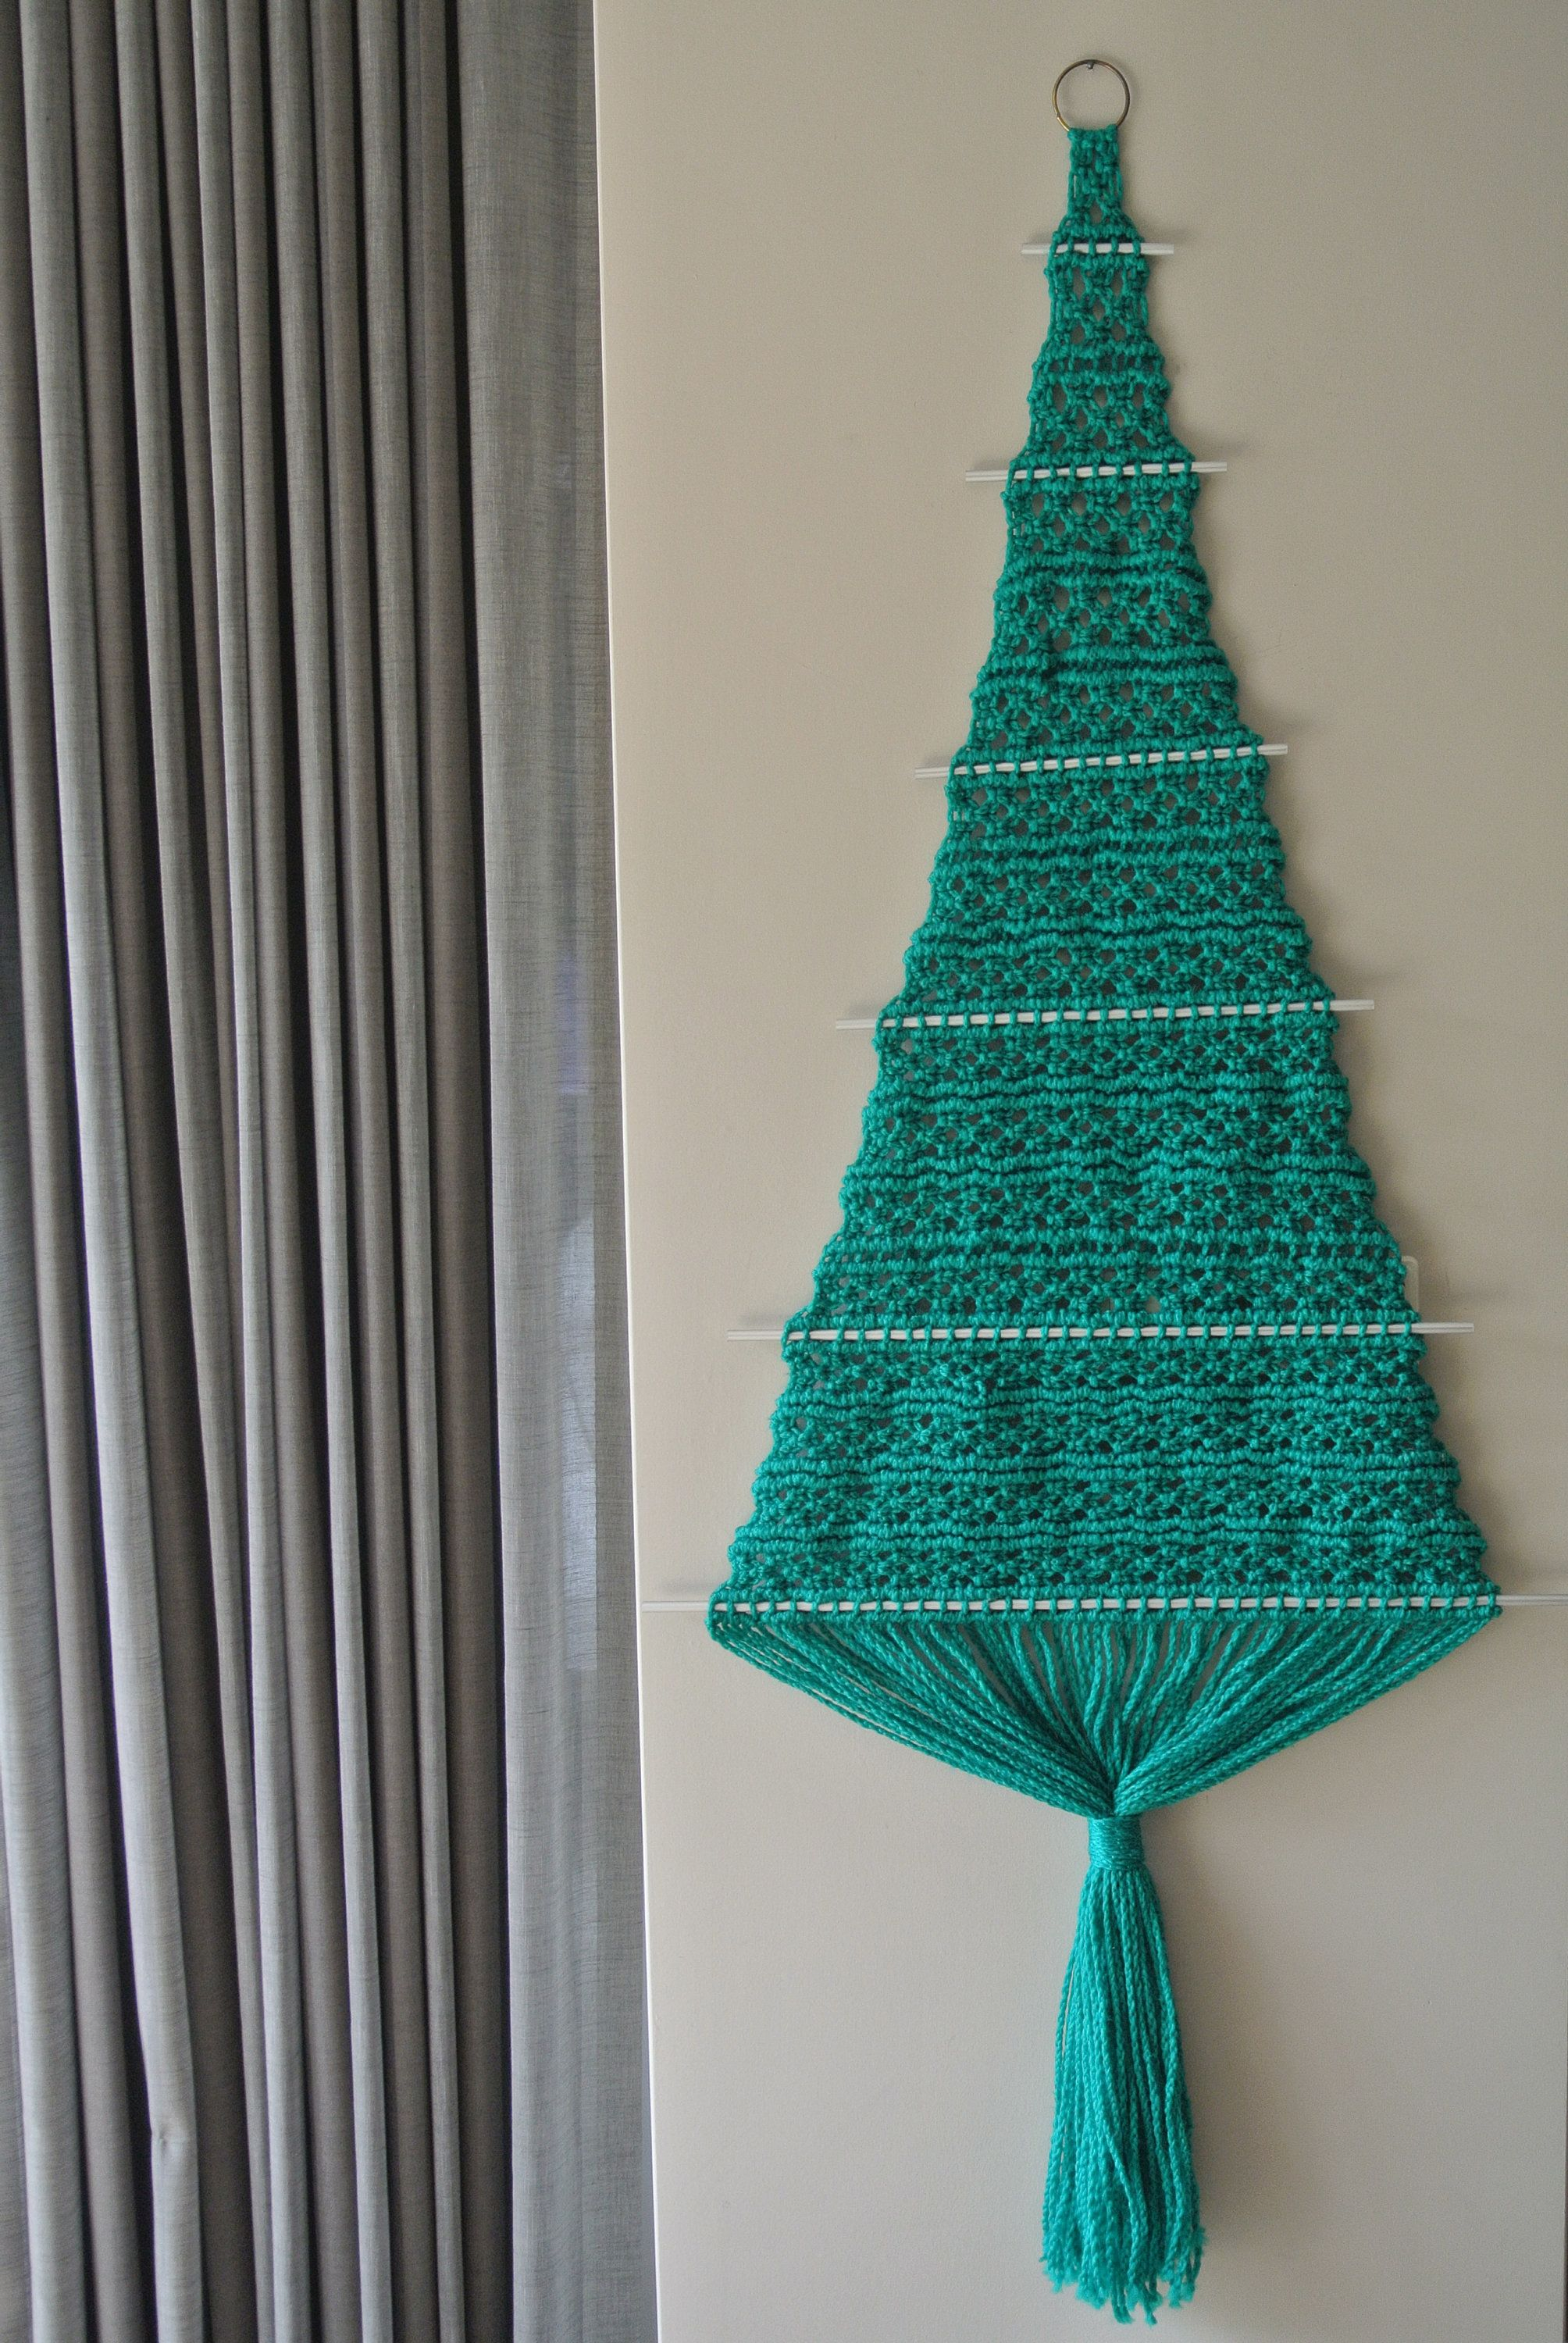 Macrame Christmas Tree Large Wall Hanging Macrame Wall Hanging Christmas Tree